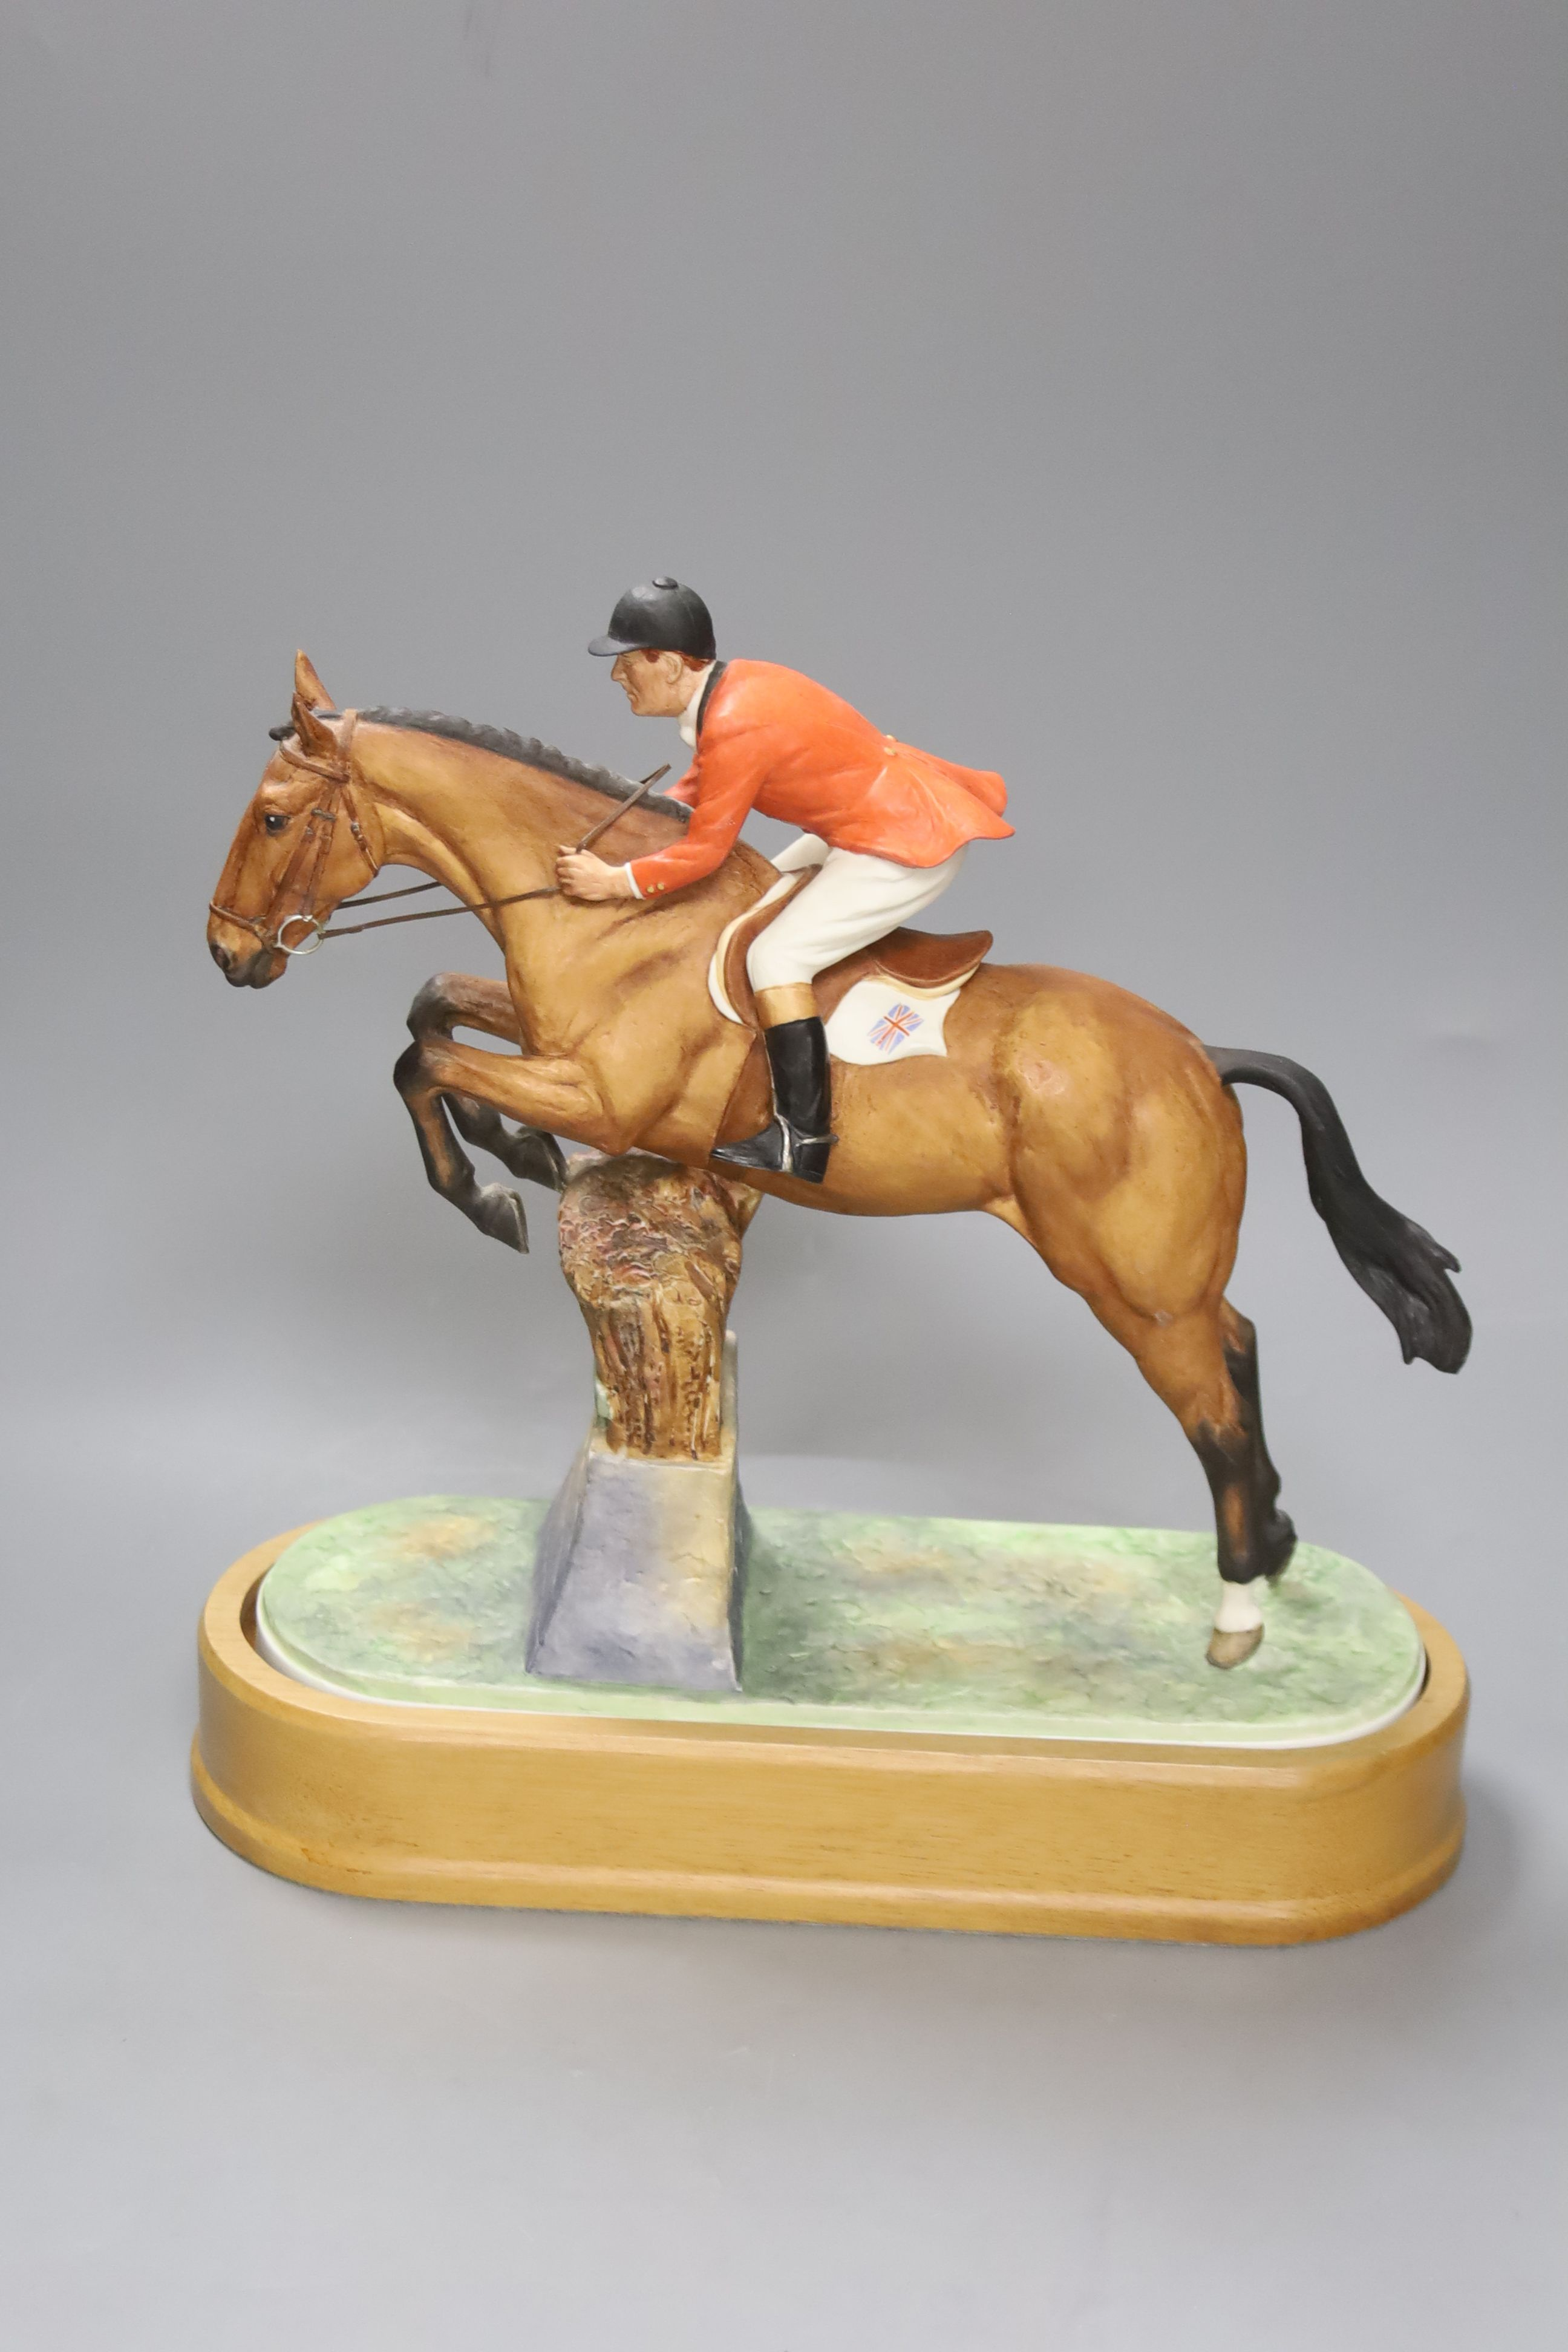 Doris Lindner for Royal Worcester, a limited edition figure, 'Foxhunter and Lt. Col. H M Llewellyn - Image 3 of 4